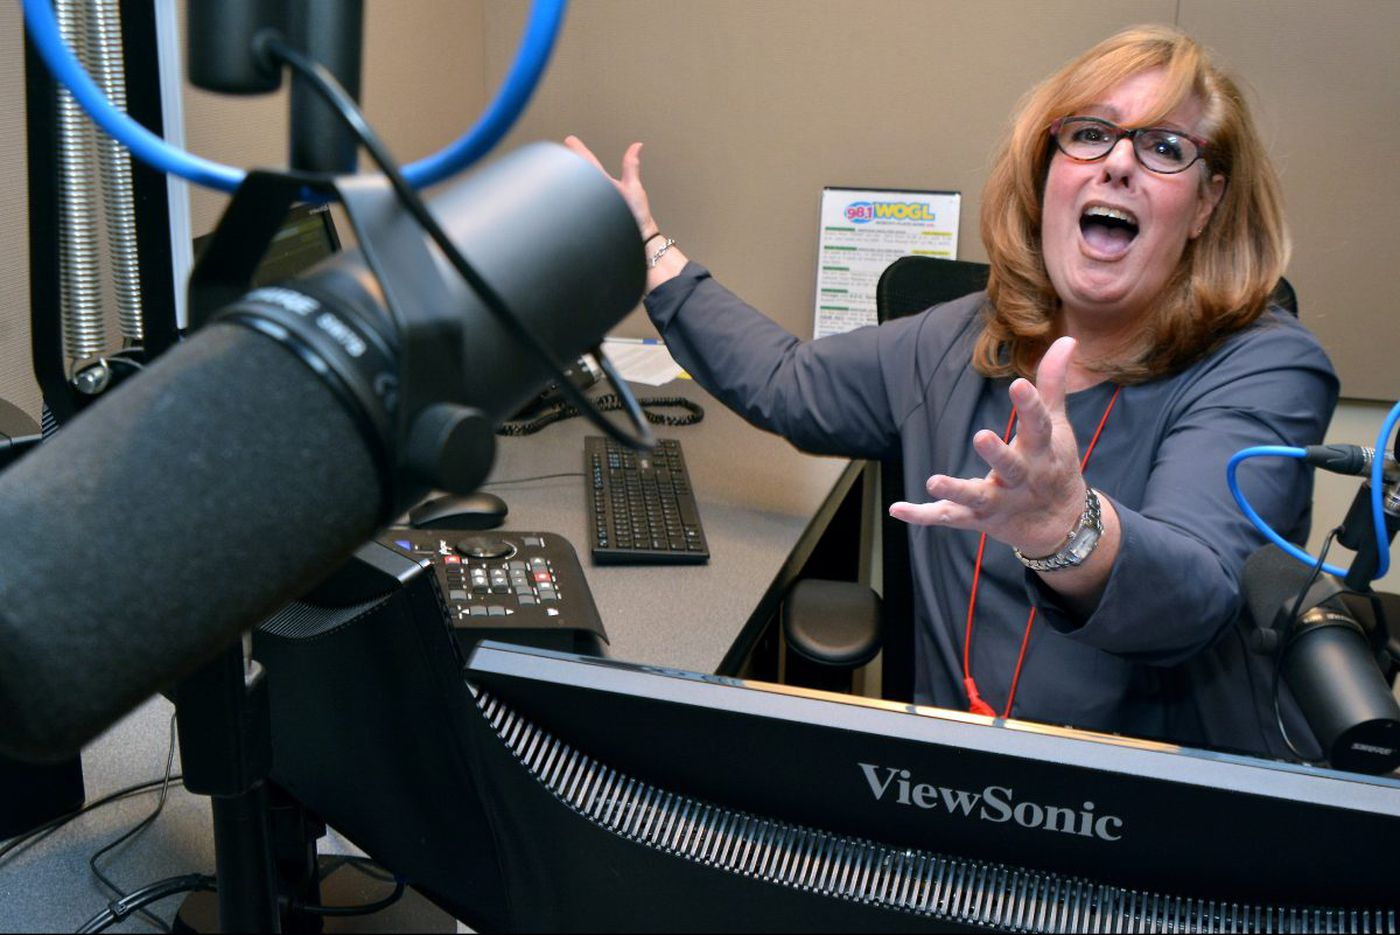 WOGL's Marilyn Russell celebrates 25 years on the air